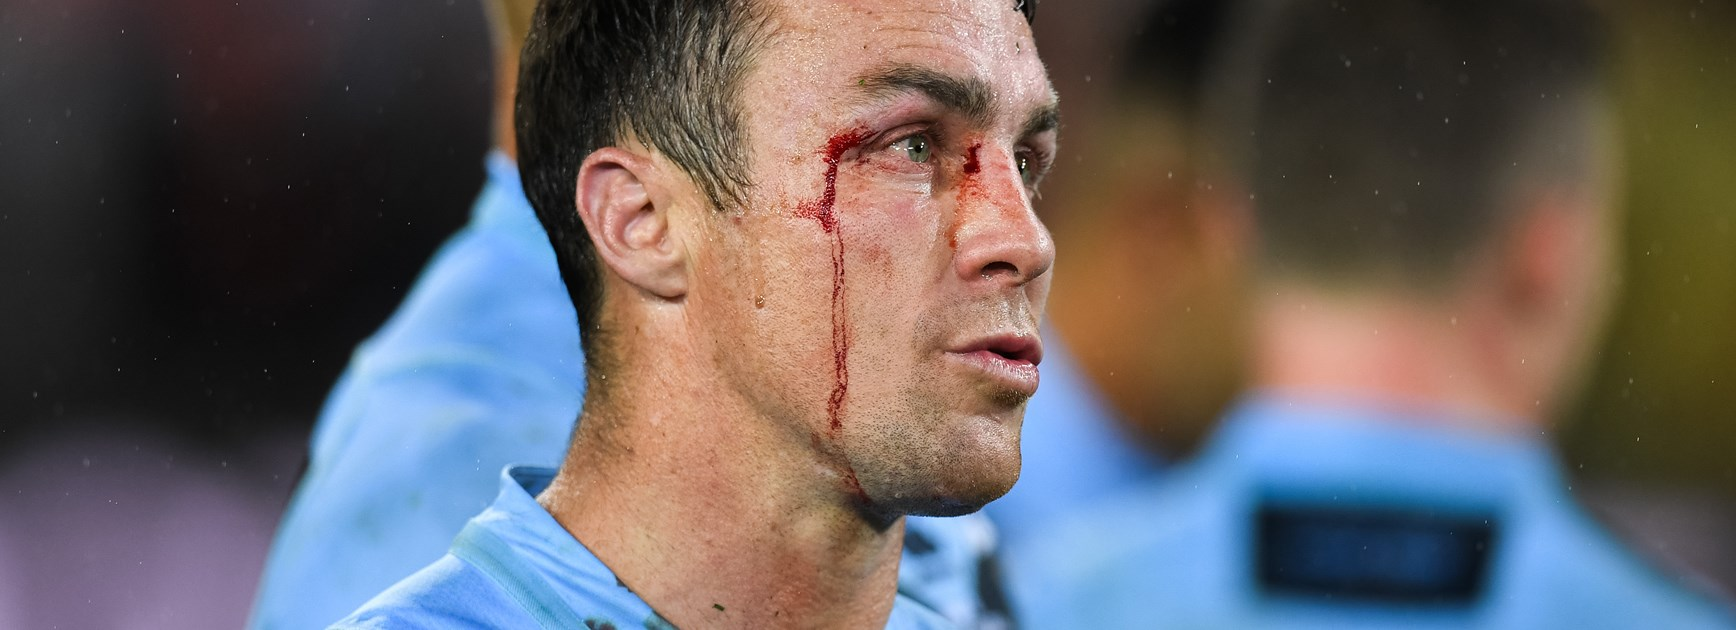 'Incredibly Tough' Maloney to Undergo Neck Surgery